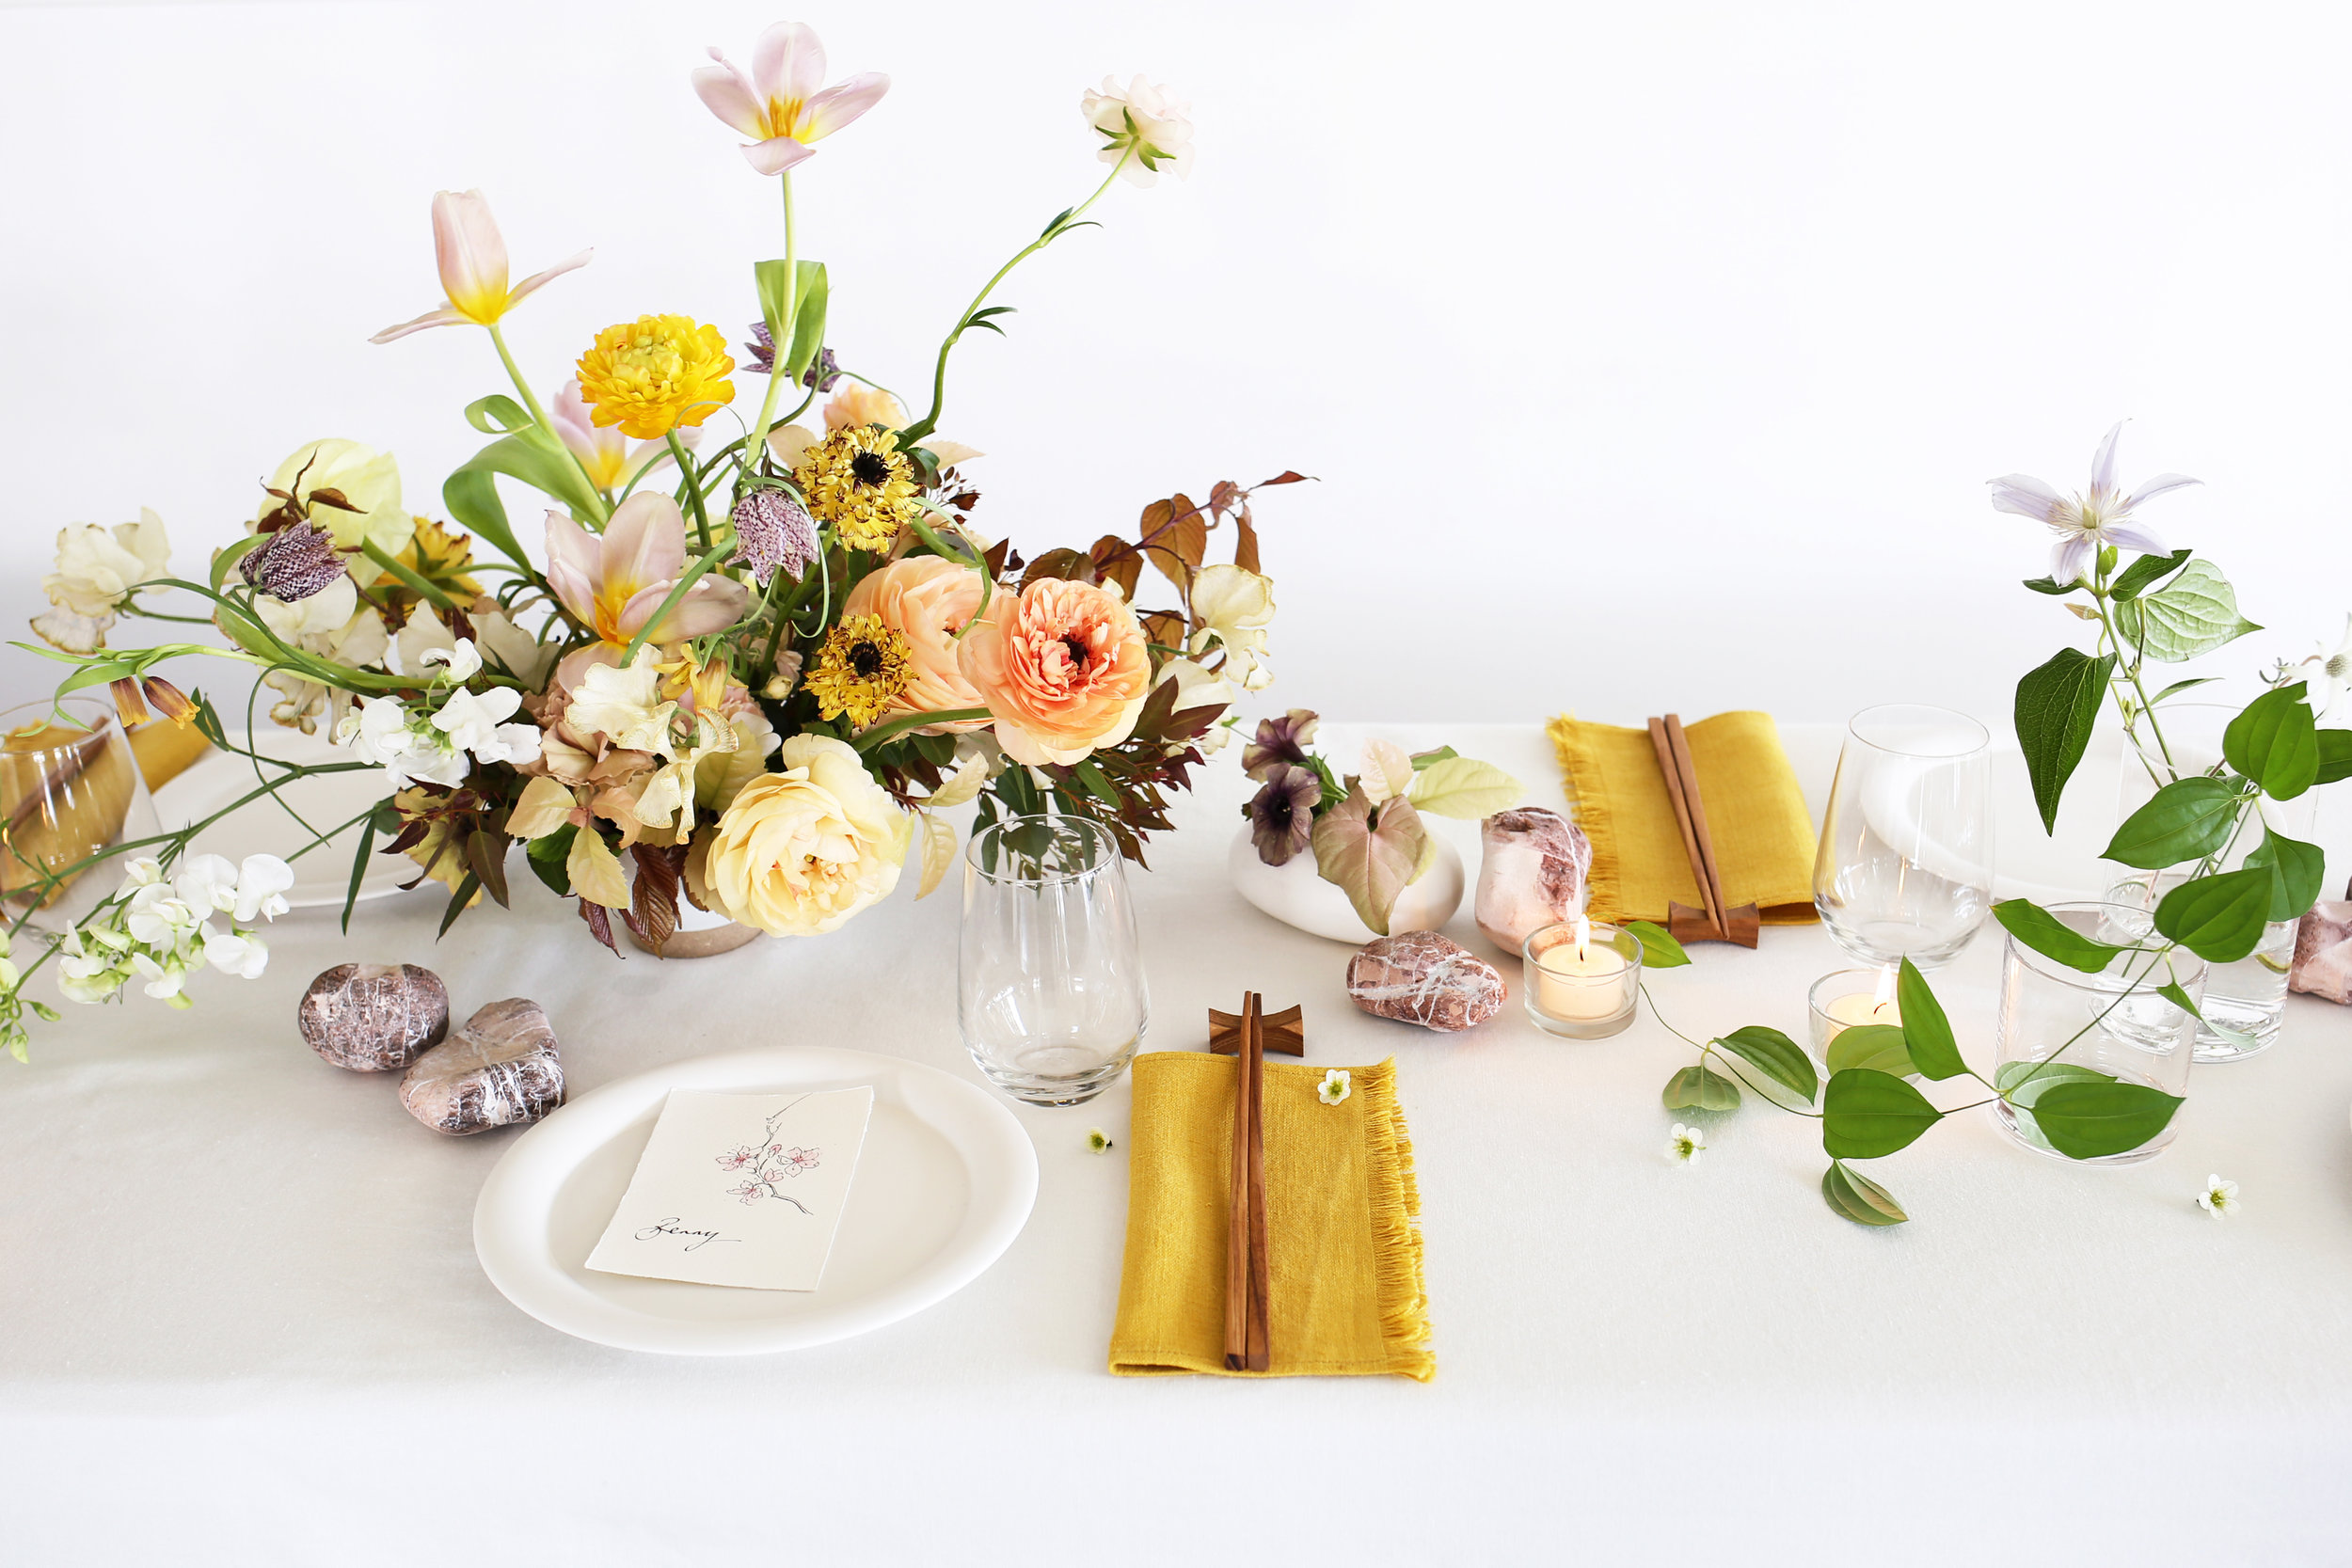 Flower School | table styling & props: beach pebbles, shells, intricate vines and ochre linen